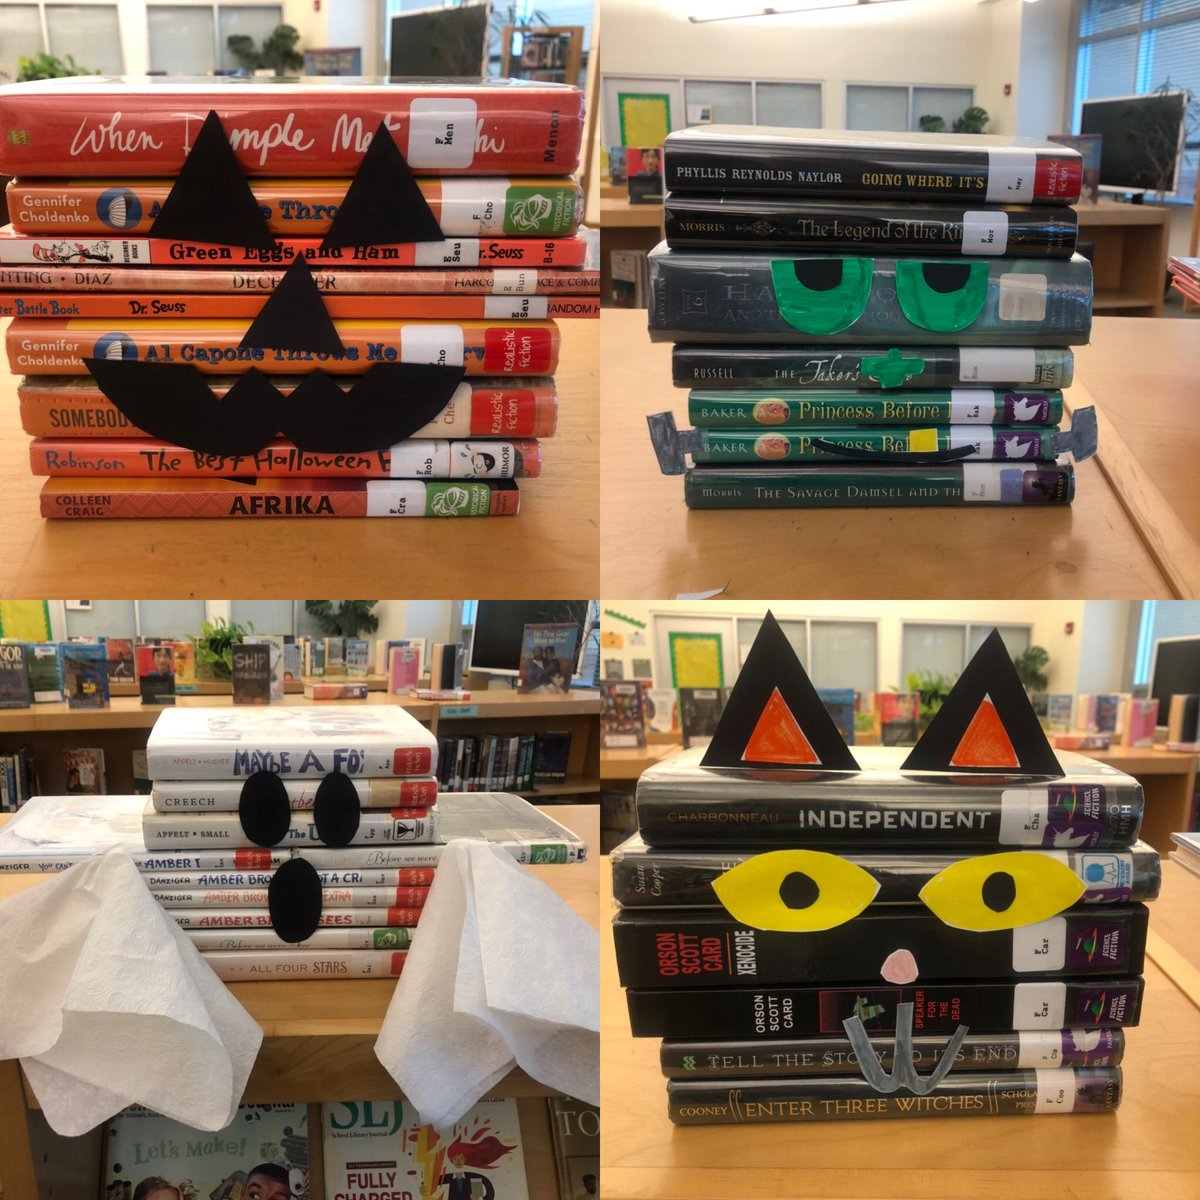 RT <a target='_blank' href='http://twitter.com/KenmoreLibrary'>@KenmoreLibrary</a>: Looking for a frighteningly good read? <a target='_blank' href='http://twitter.com/APSKenmore'>@APSKenmore</a> <a target='_blank' href='http://twitter.com/APSLibrarians'>@APSLibrarians</a> <a target='_blank' href='https://t.co/ljs1h64lG1'>https://t.co/ljs1h64lG1</a>